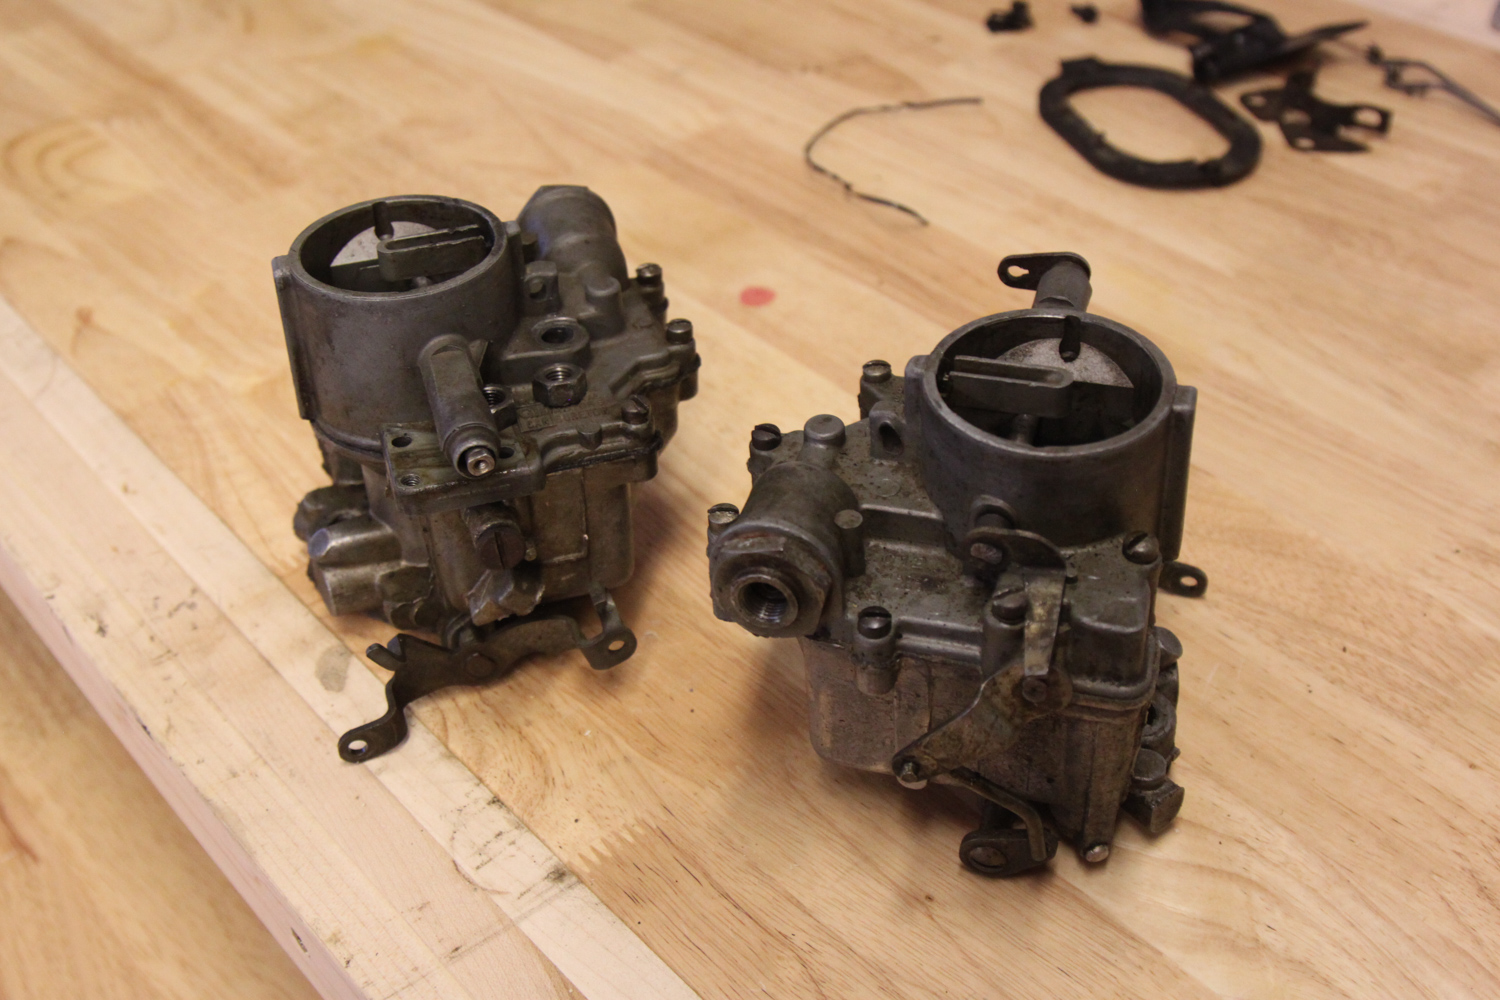 These are the secondary carburetors that were removed to be replaced with units that have an idle circuit.